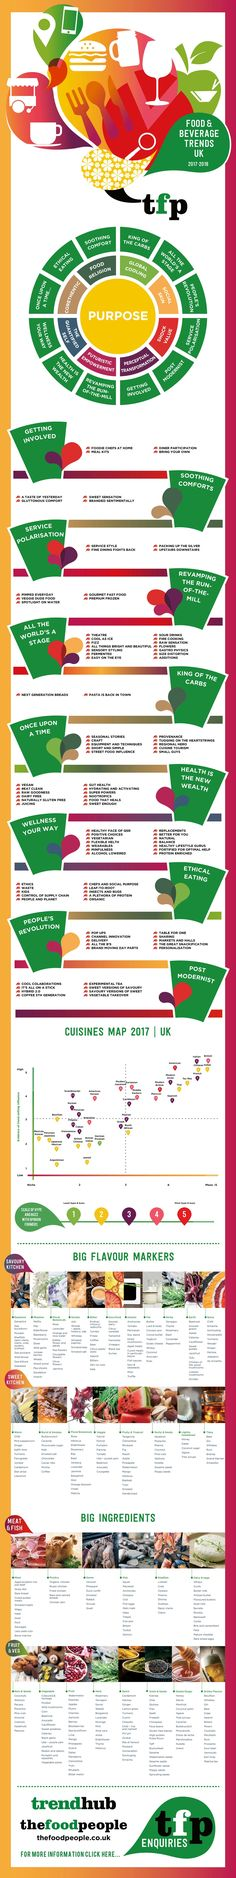 culinary trends that are changing the industry the foodie blog 2017 culinary trends pinterest